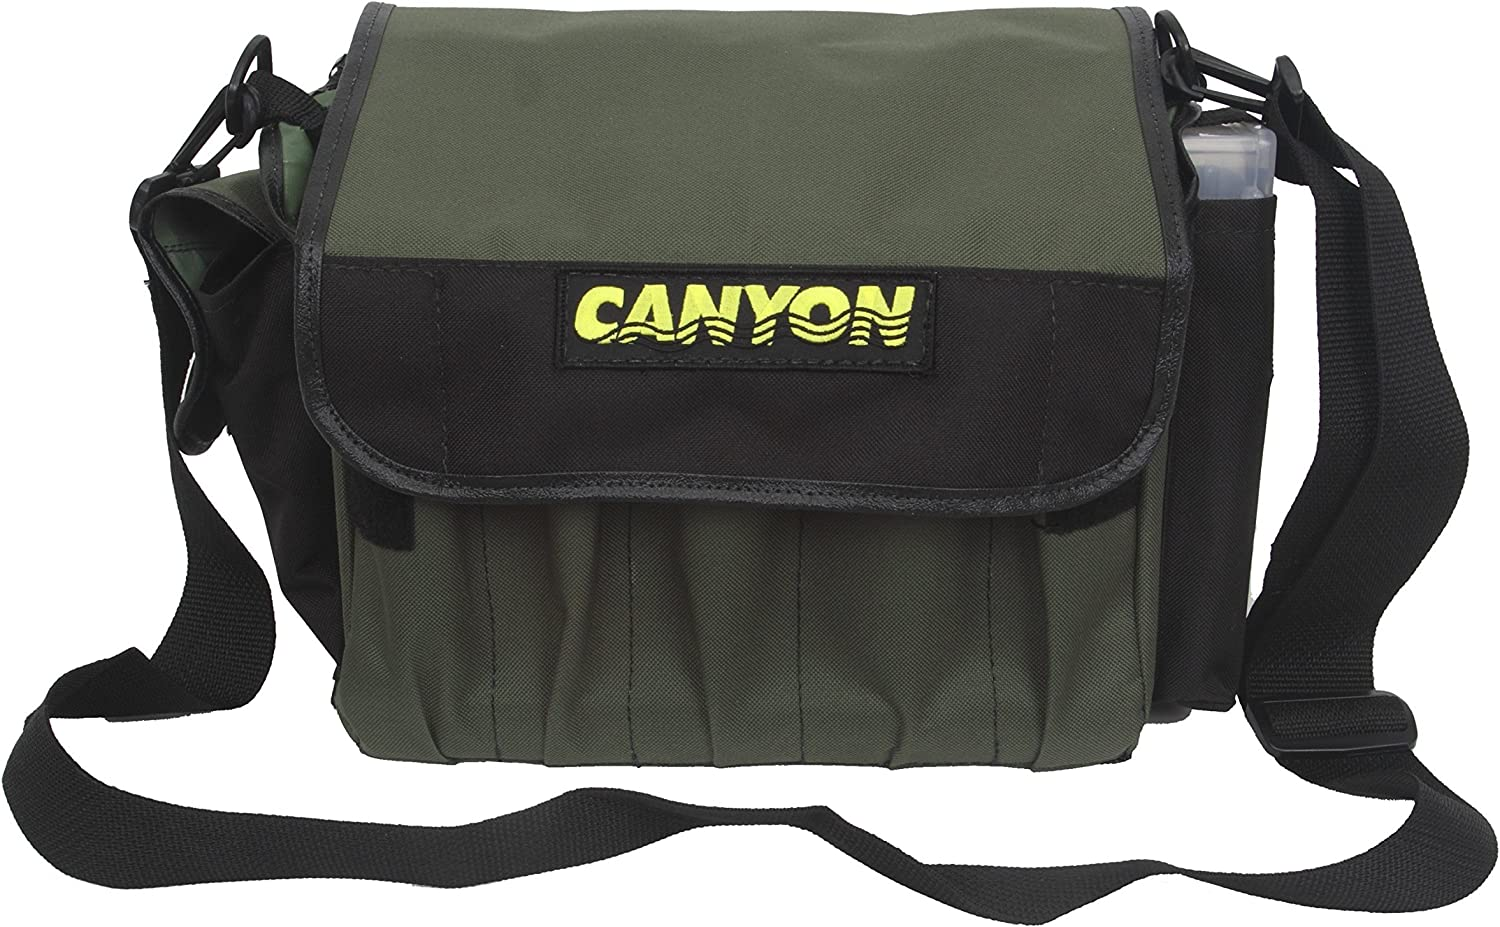 CANYON Surf Bags in 3 Sizes  The Original, Made in The USA